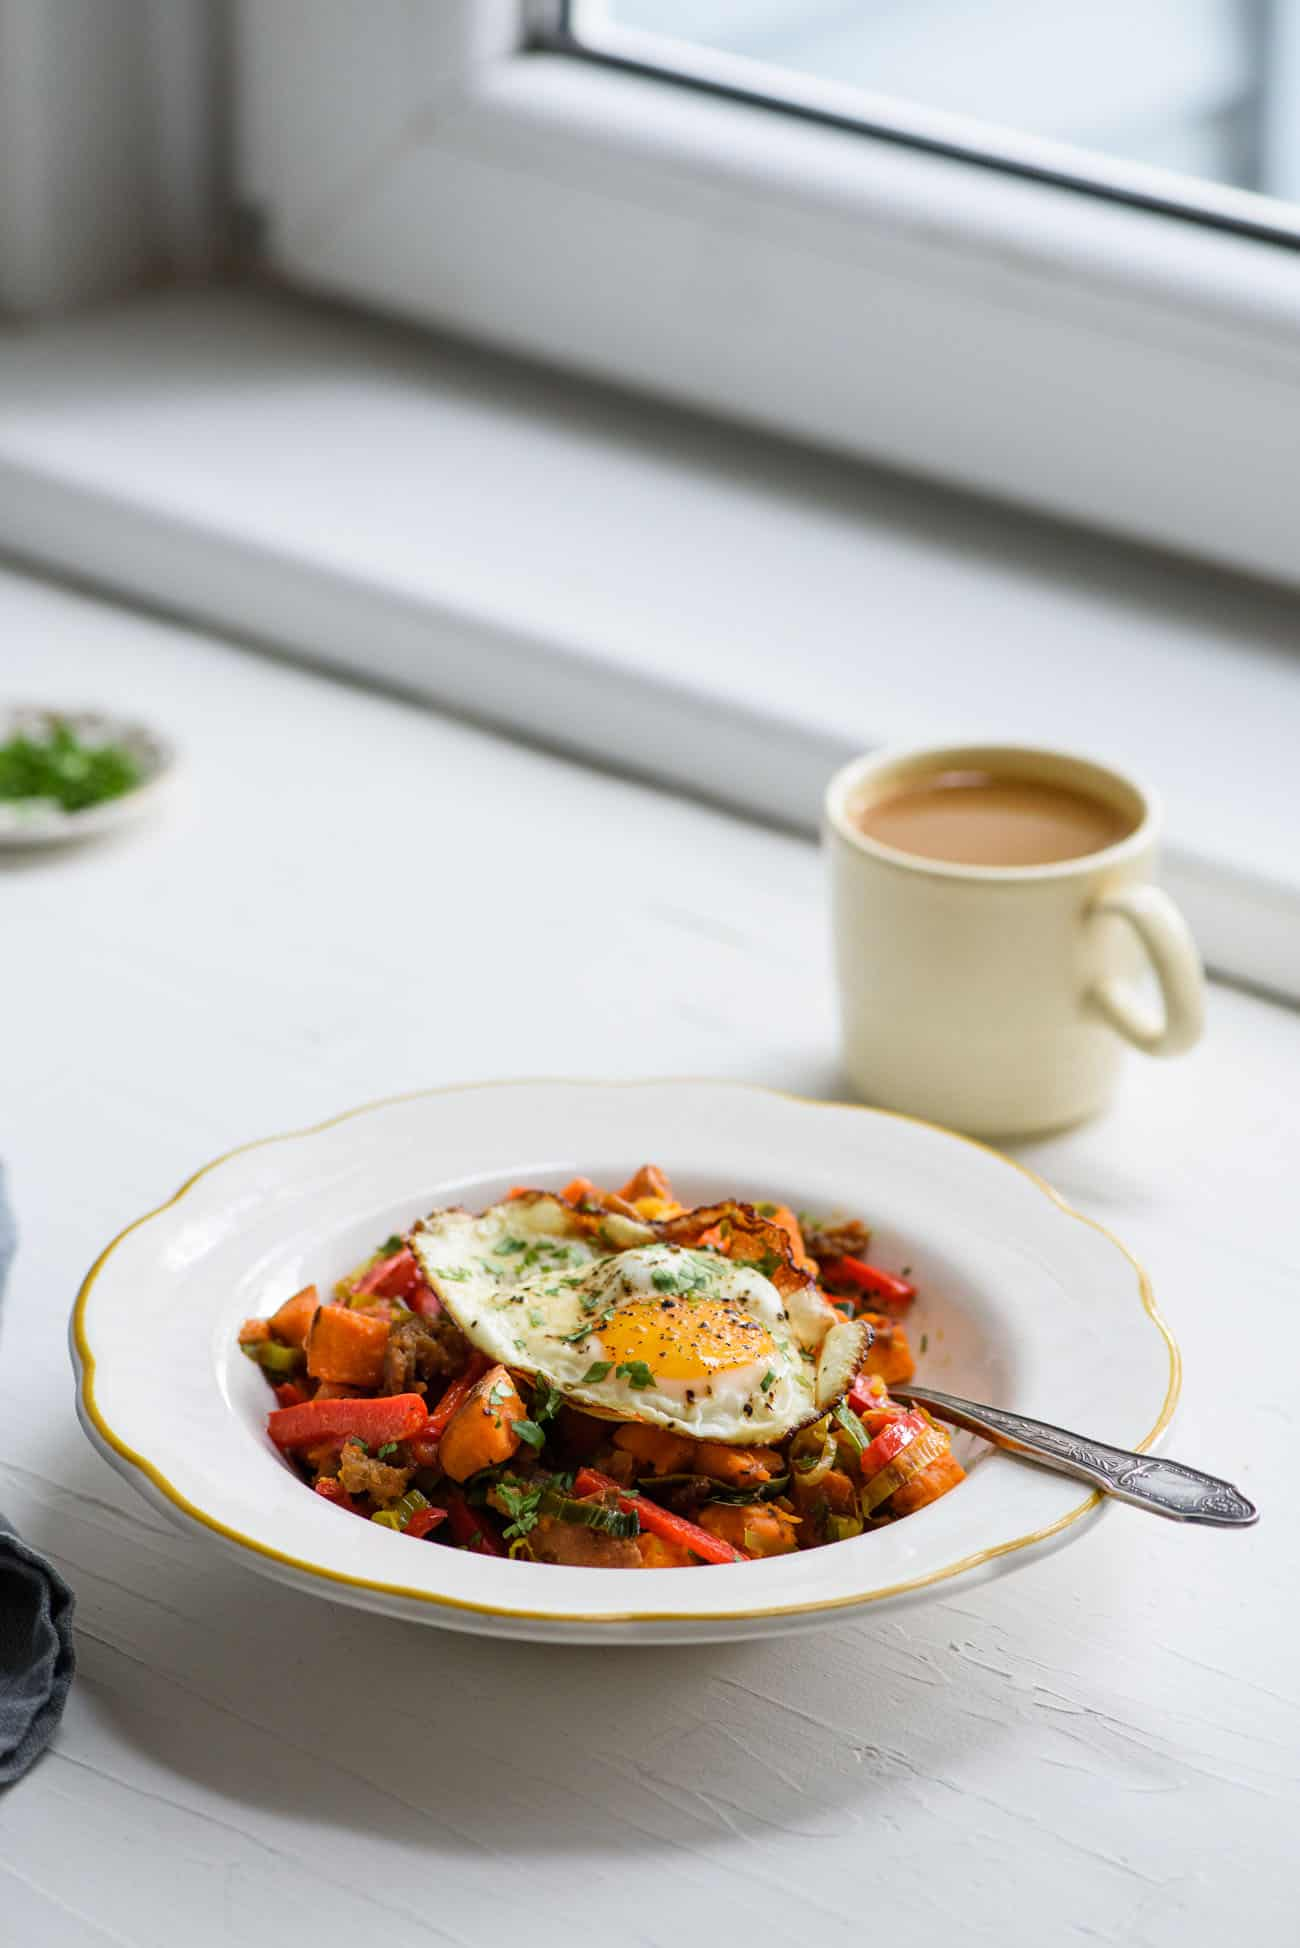 Sweet potato breakfast hash in a white bowl next to a cup of coffee